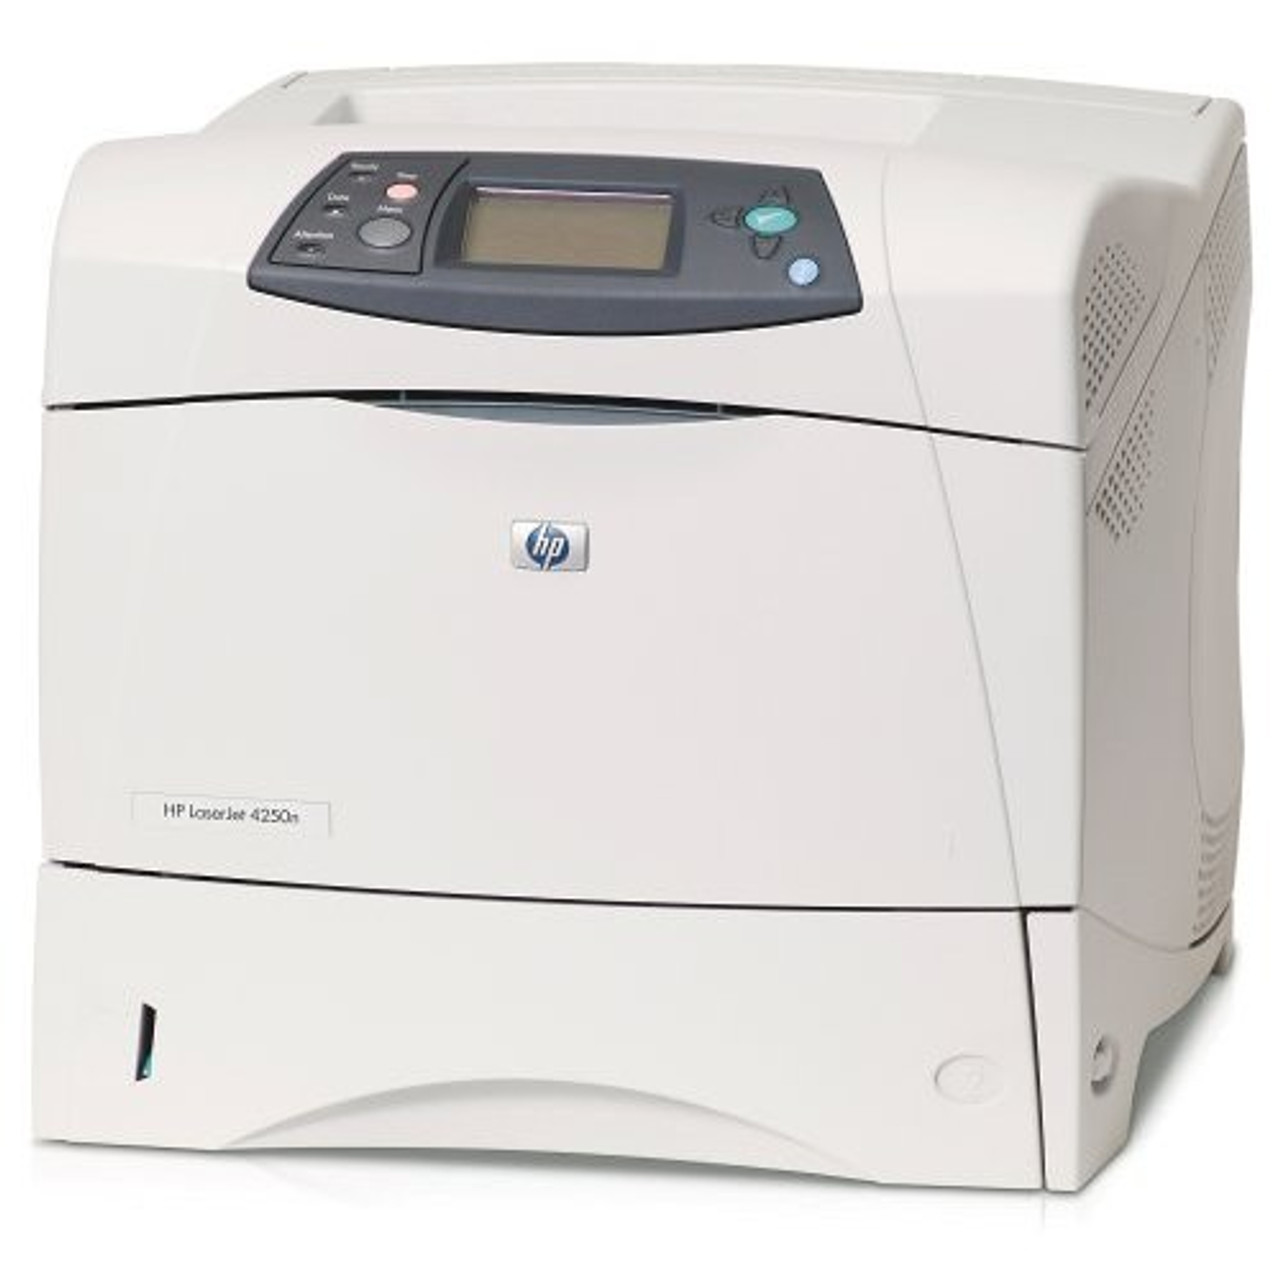 HP LaserJet 4300n - Q2432A- HP Laser Printer for sale